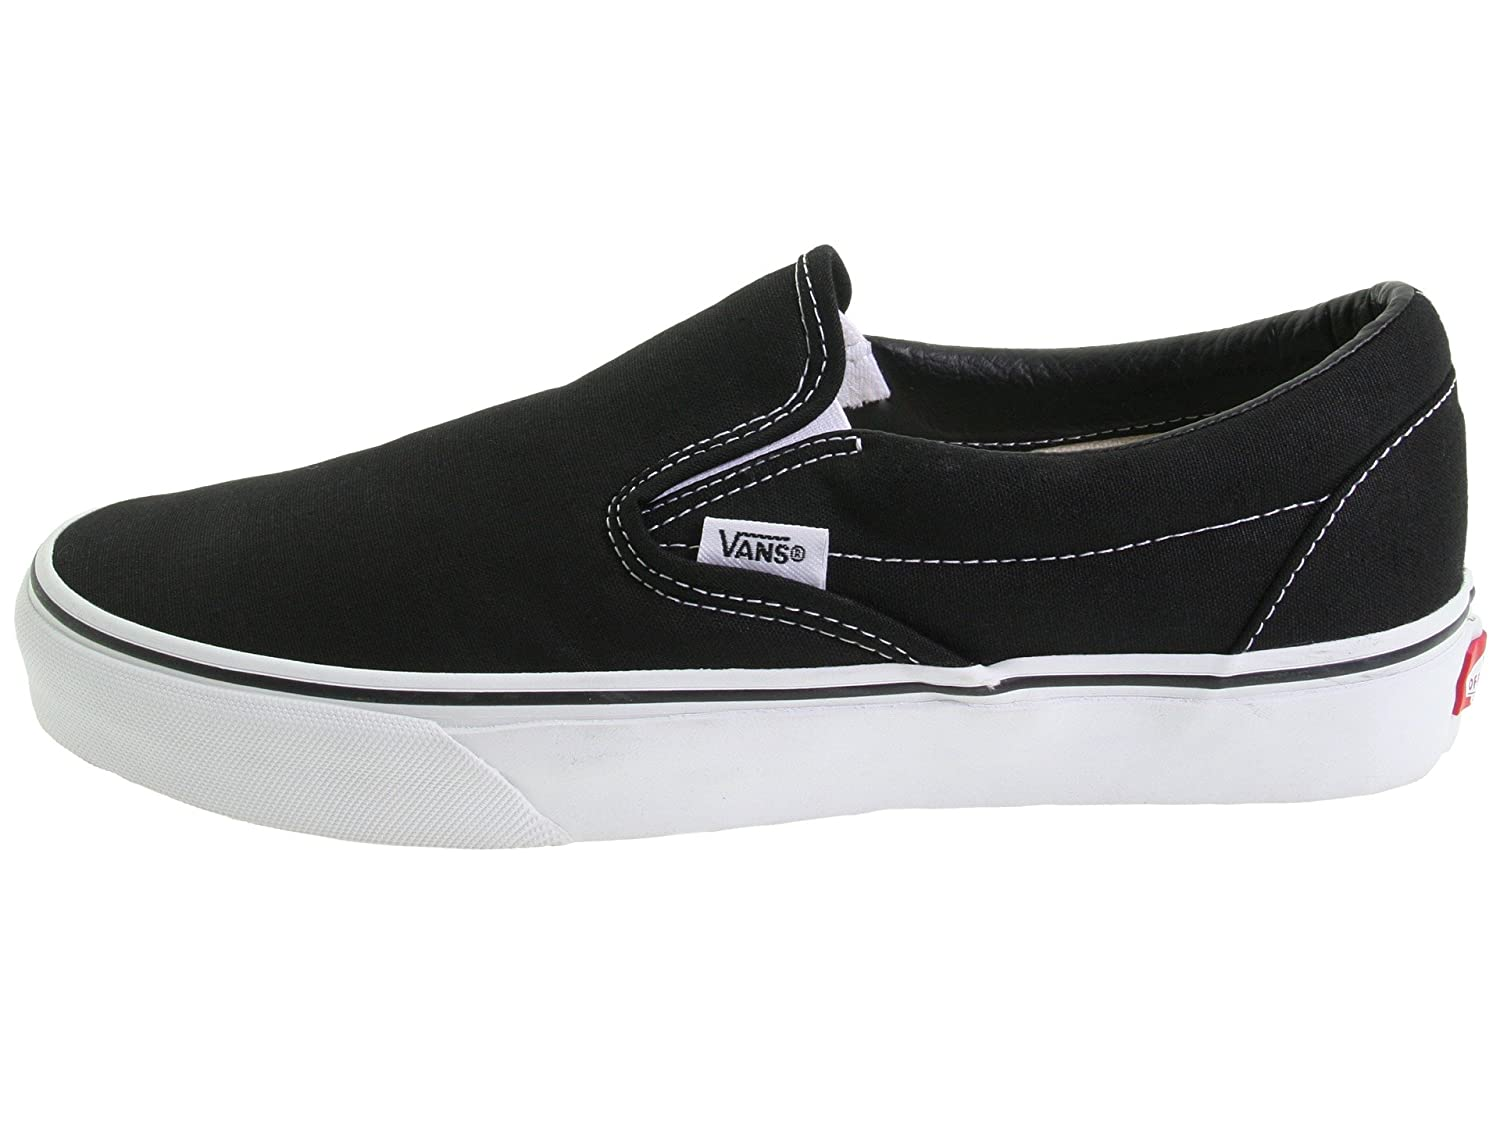 Vans Unisex Classic (Checkerboard) Slip-On Skate Shoe B075B54L4T 12.5 B(M) US Women / 11 D(M) US Men|Classic Black/White